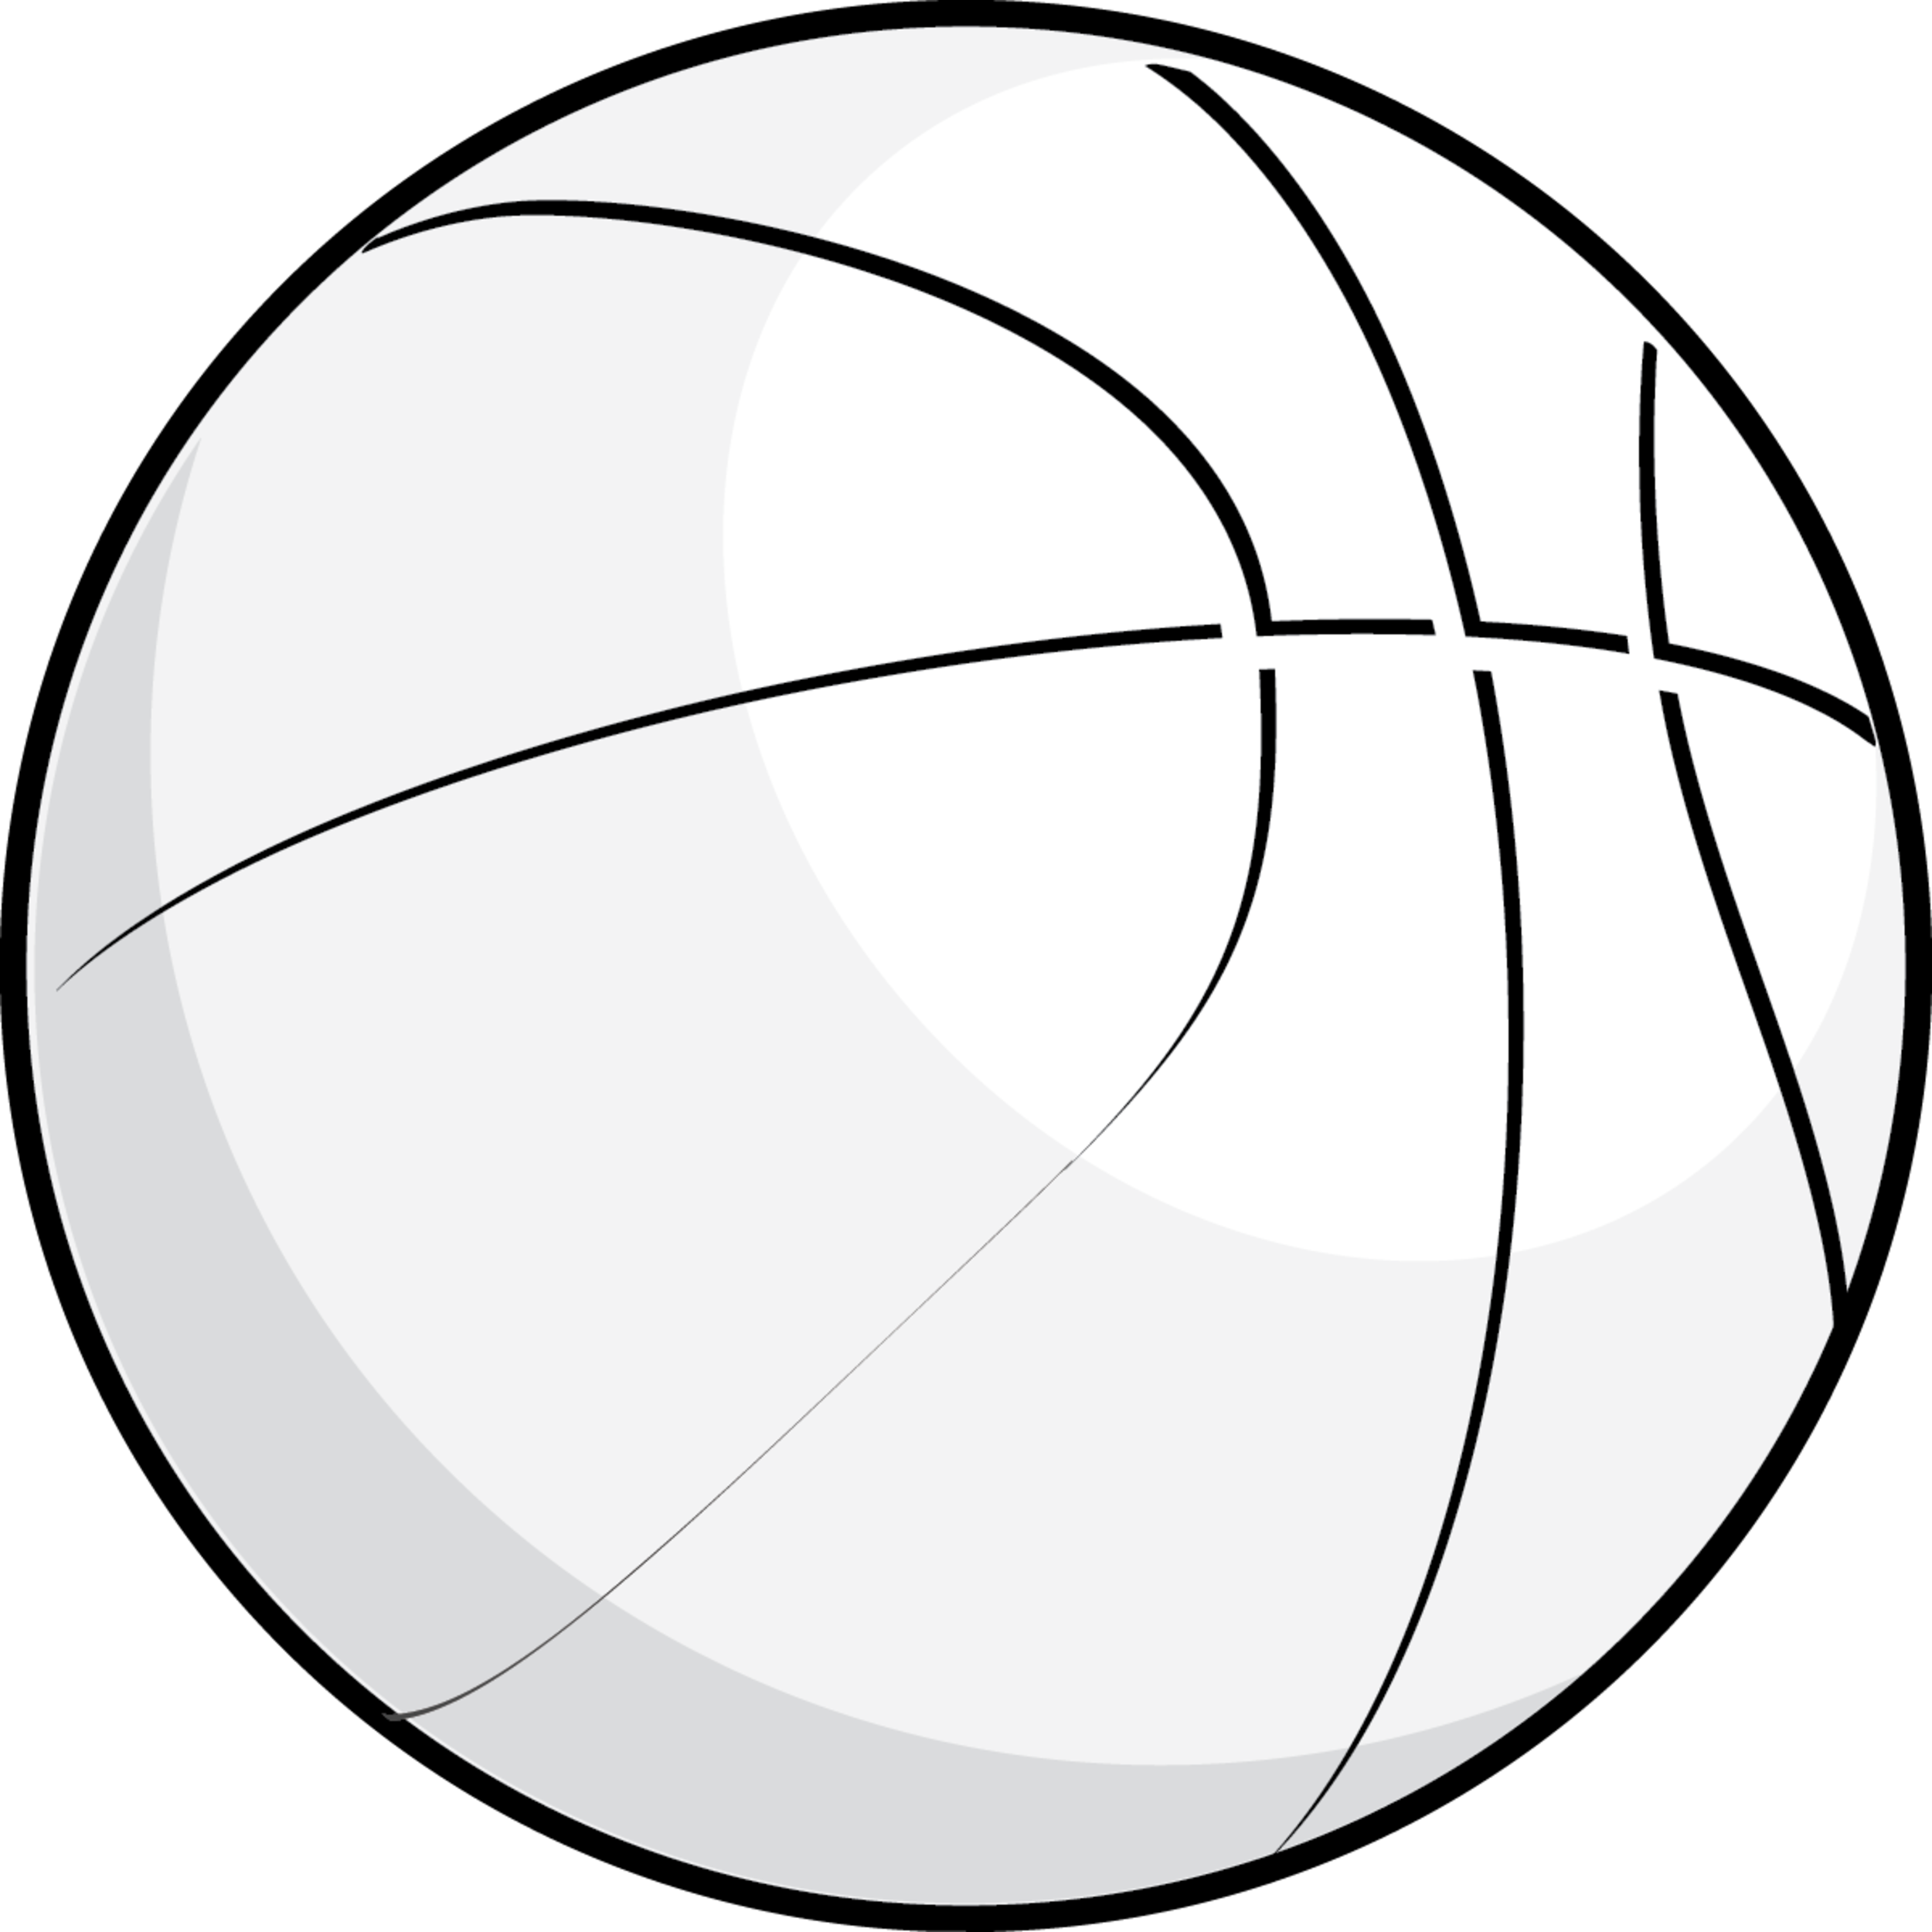 Basketball Clip | Free download best Basketball Clip on